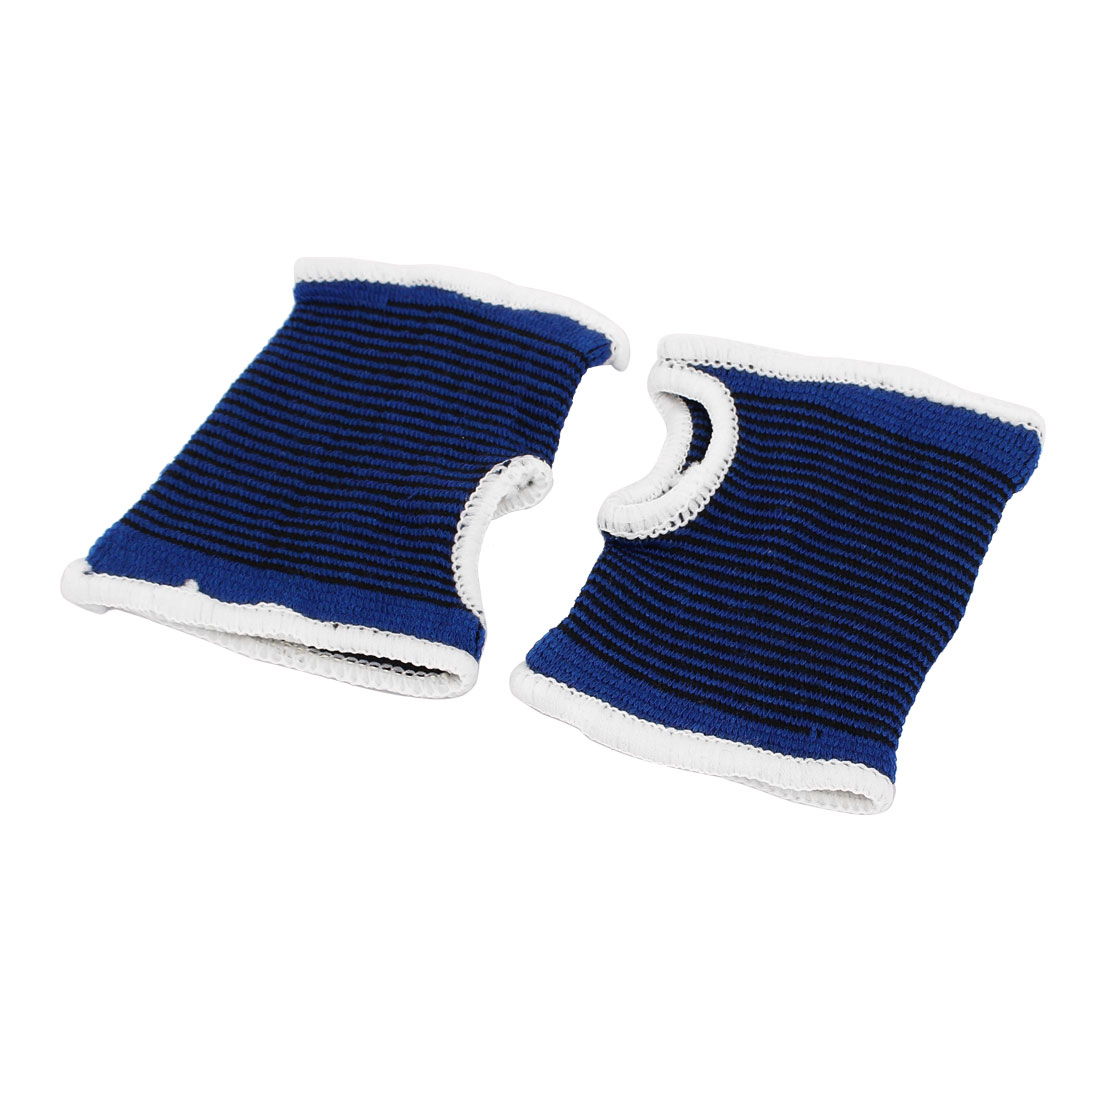 Athletic Sport Band Wrist Palm Support Protector Dark Blue Black Pair